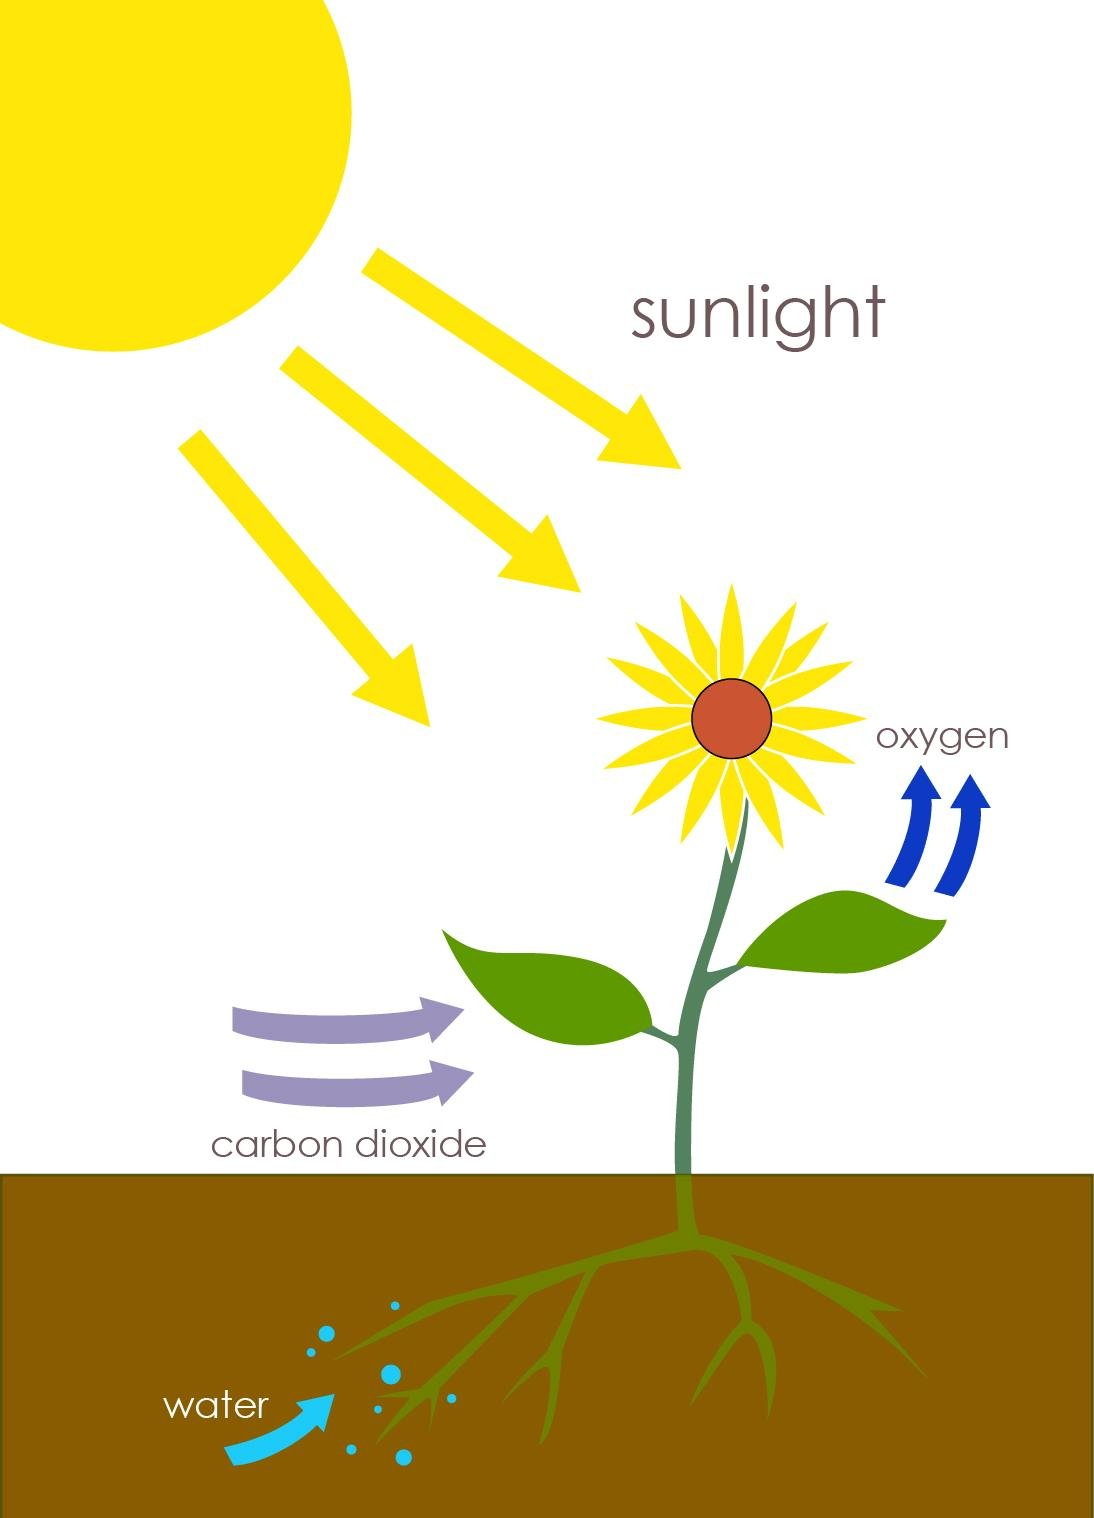 Name Five Substances That Plants Make From The Glucose Produced In Photosynthesis